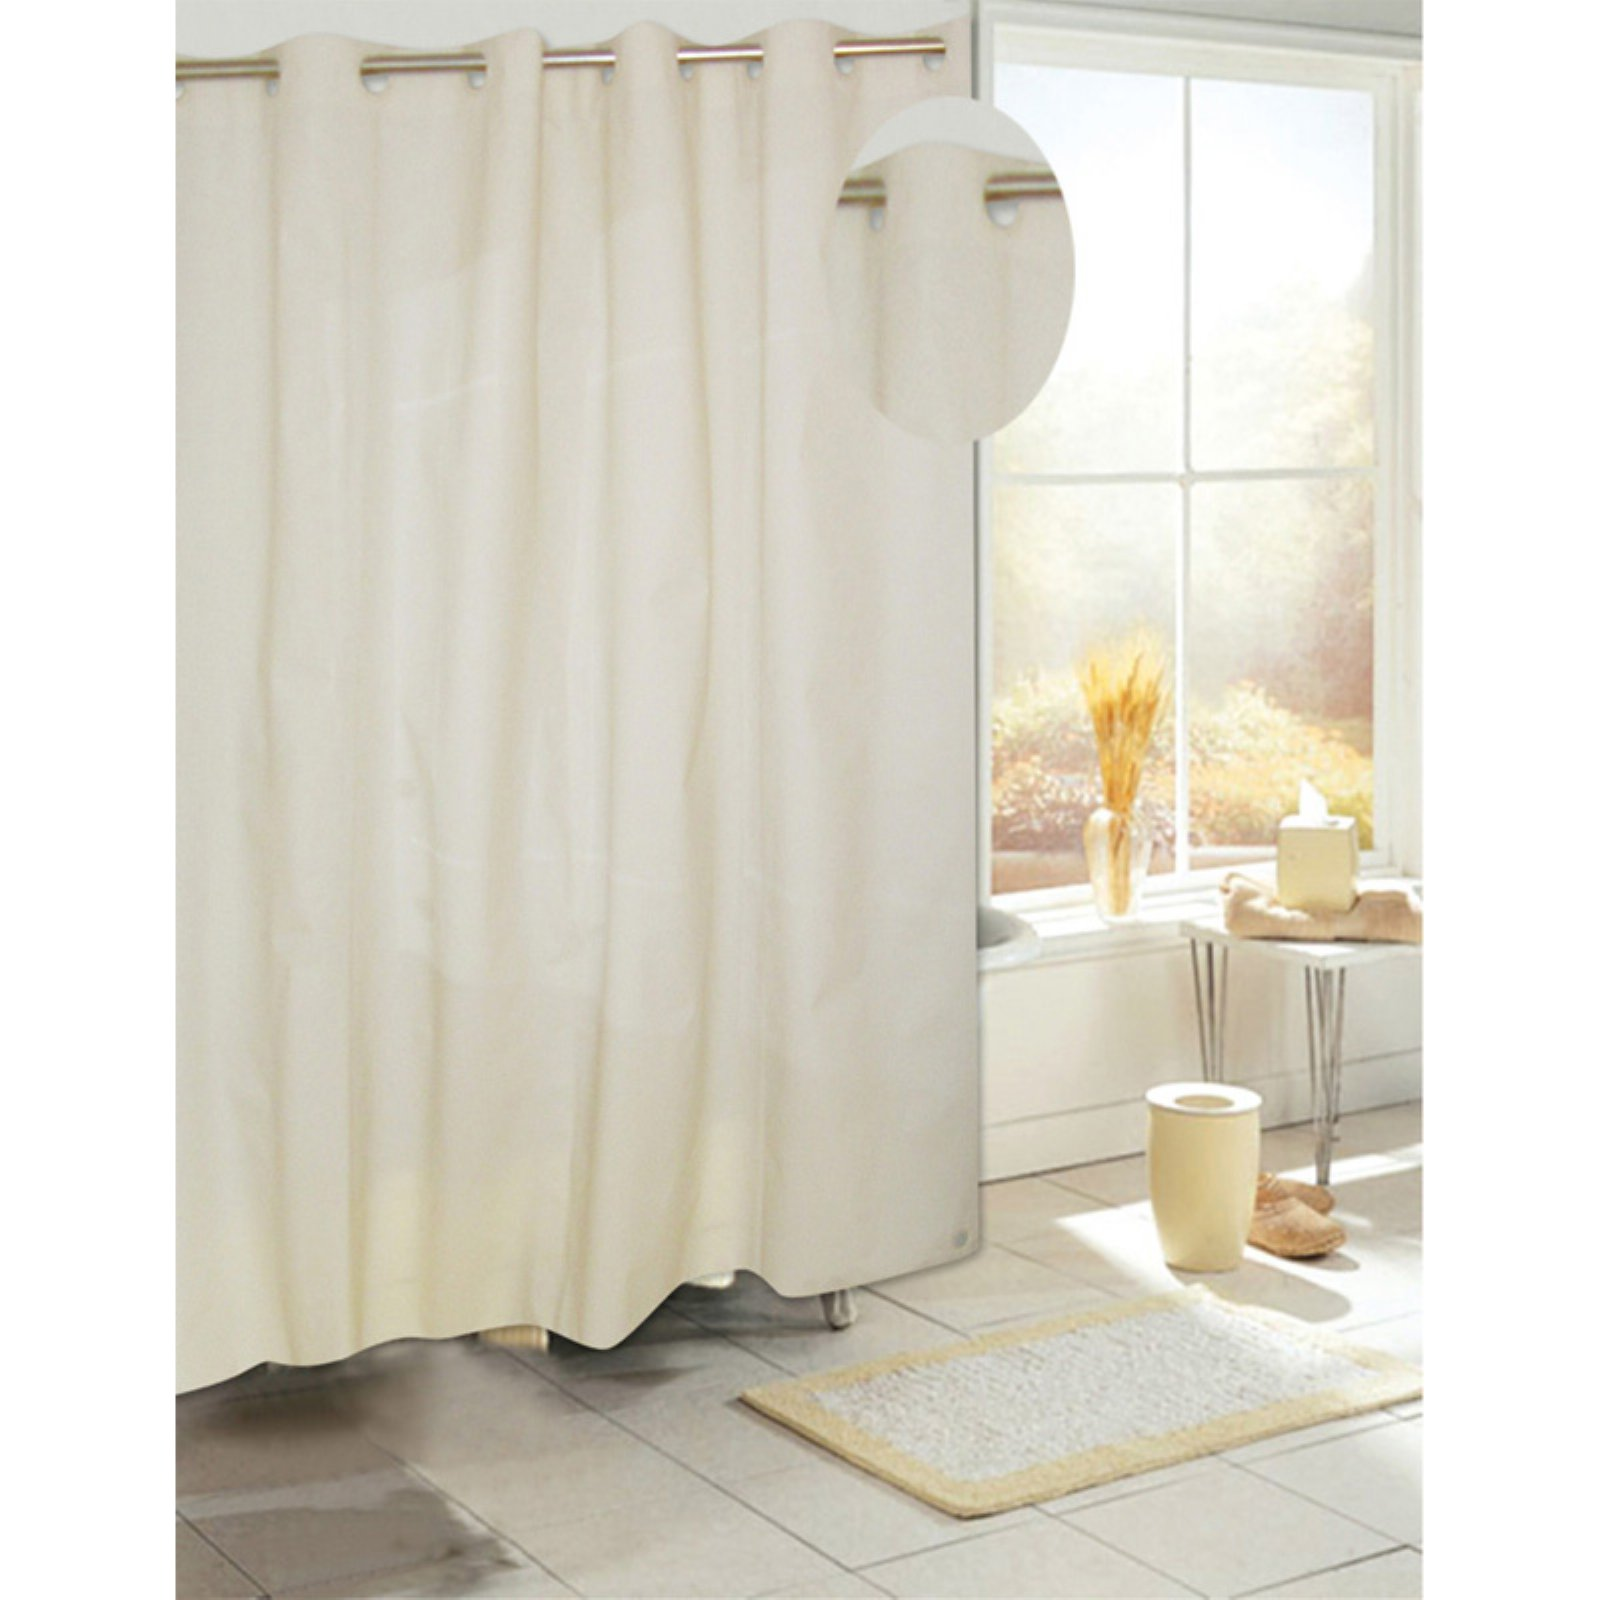 Carnation Home Fashions Ez On Eva Vinyl Shower Curtain with Build in Hooks